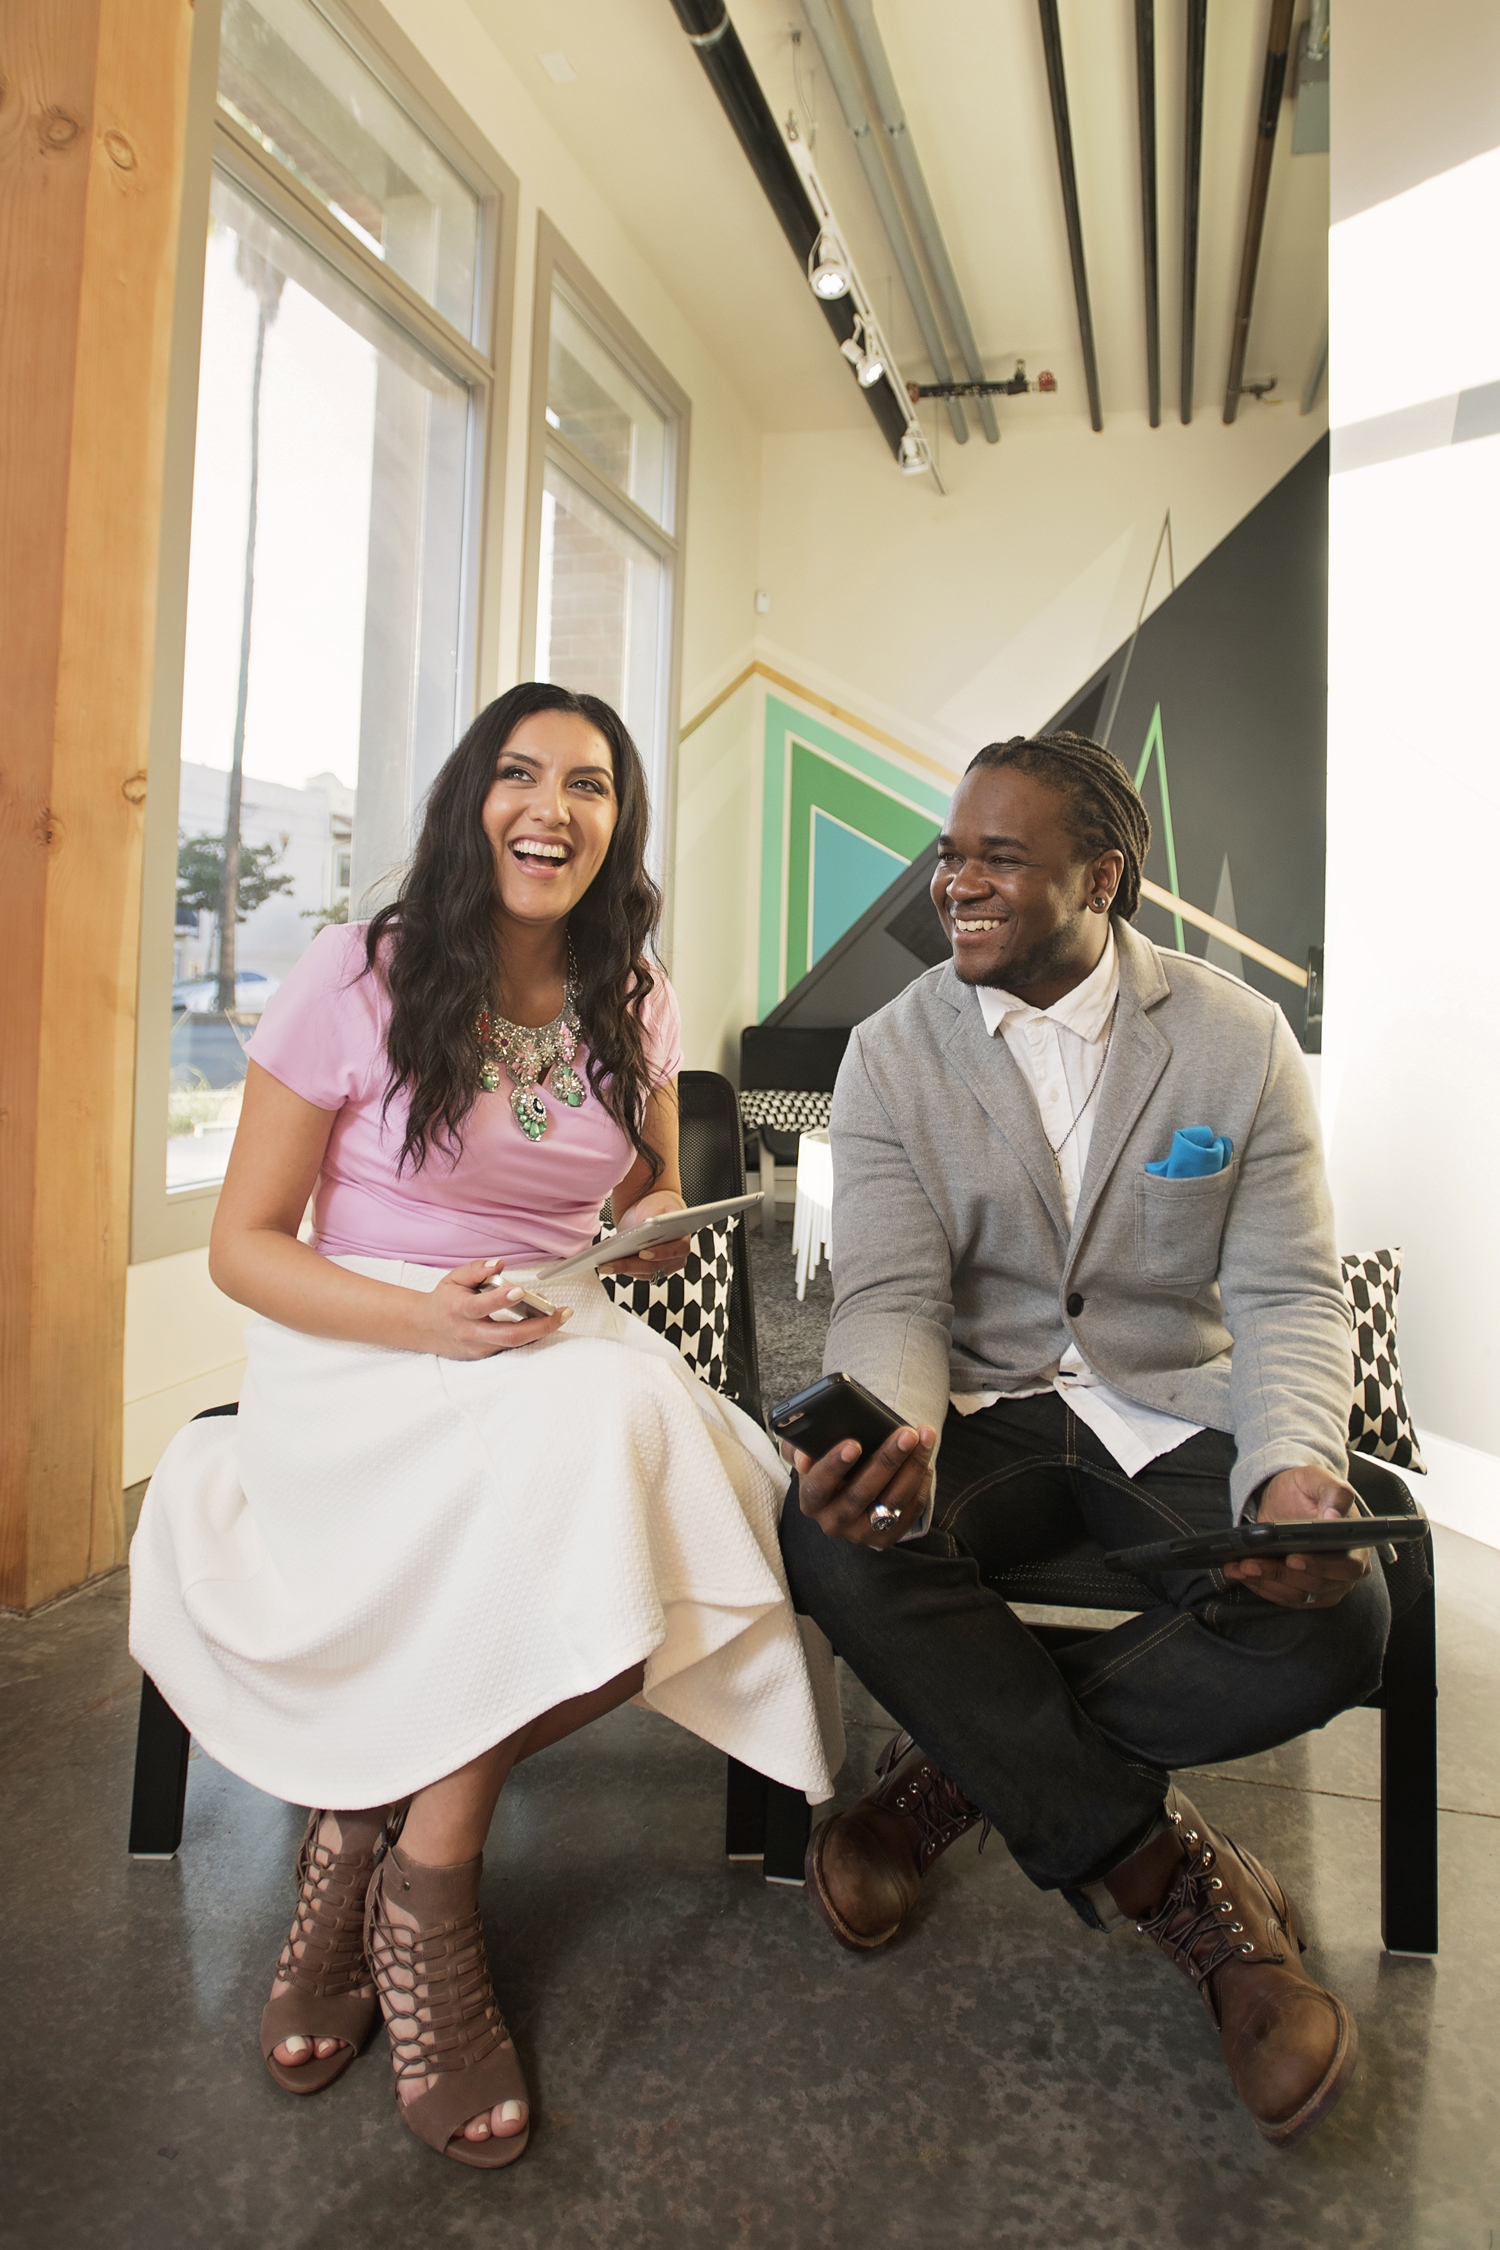 Photo credit: Roshaun and Maritza Davis as photographed by Beth Baugher of Truelove photography.